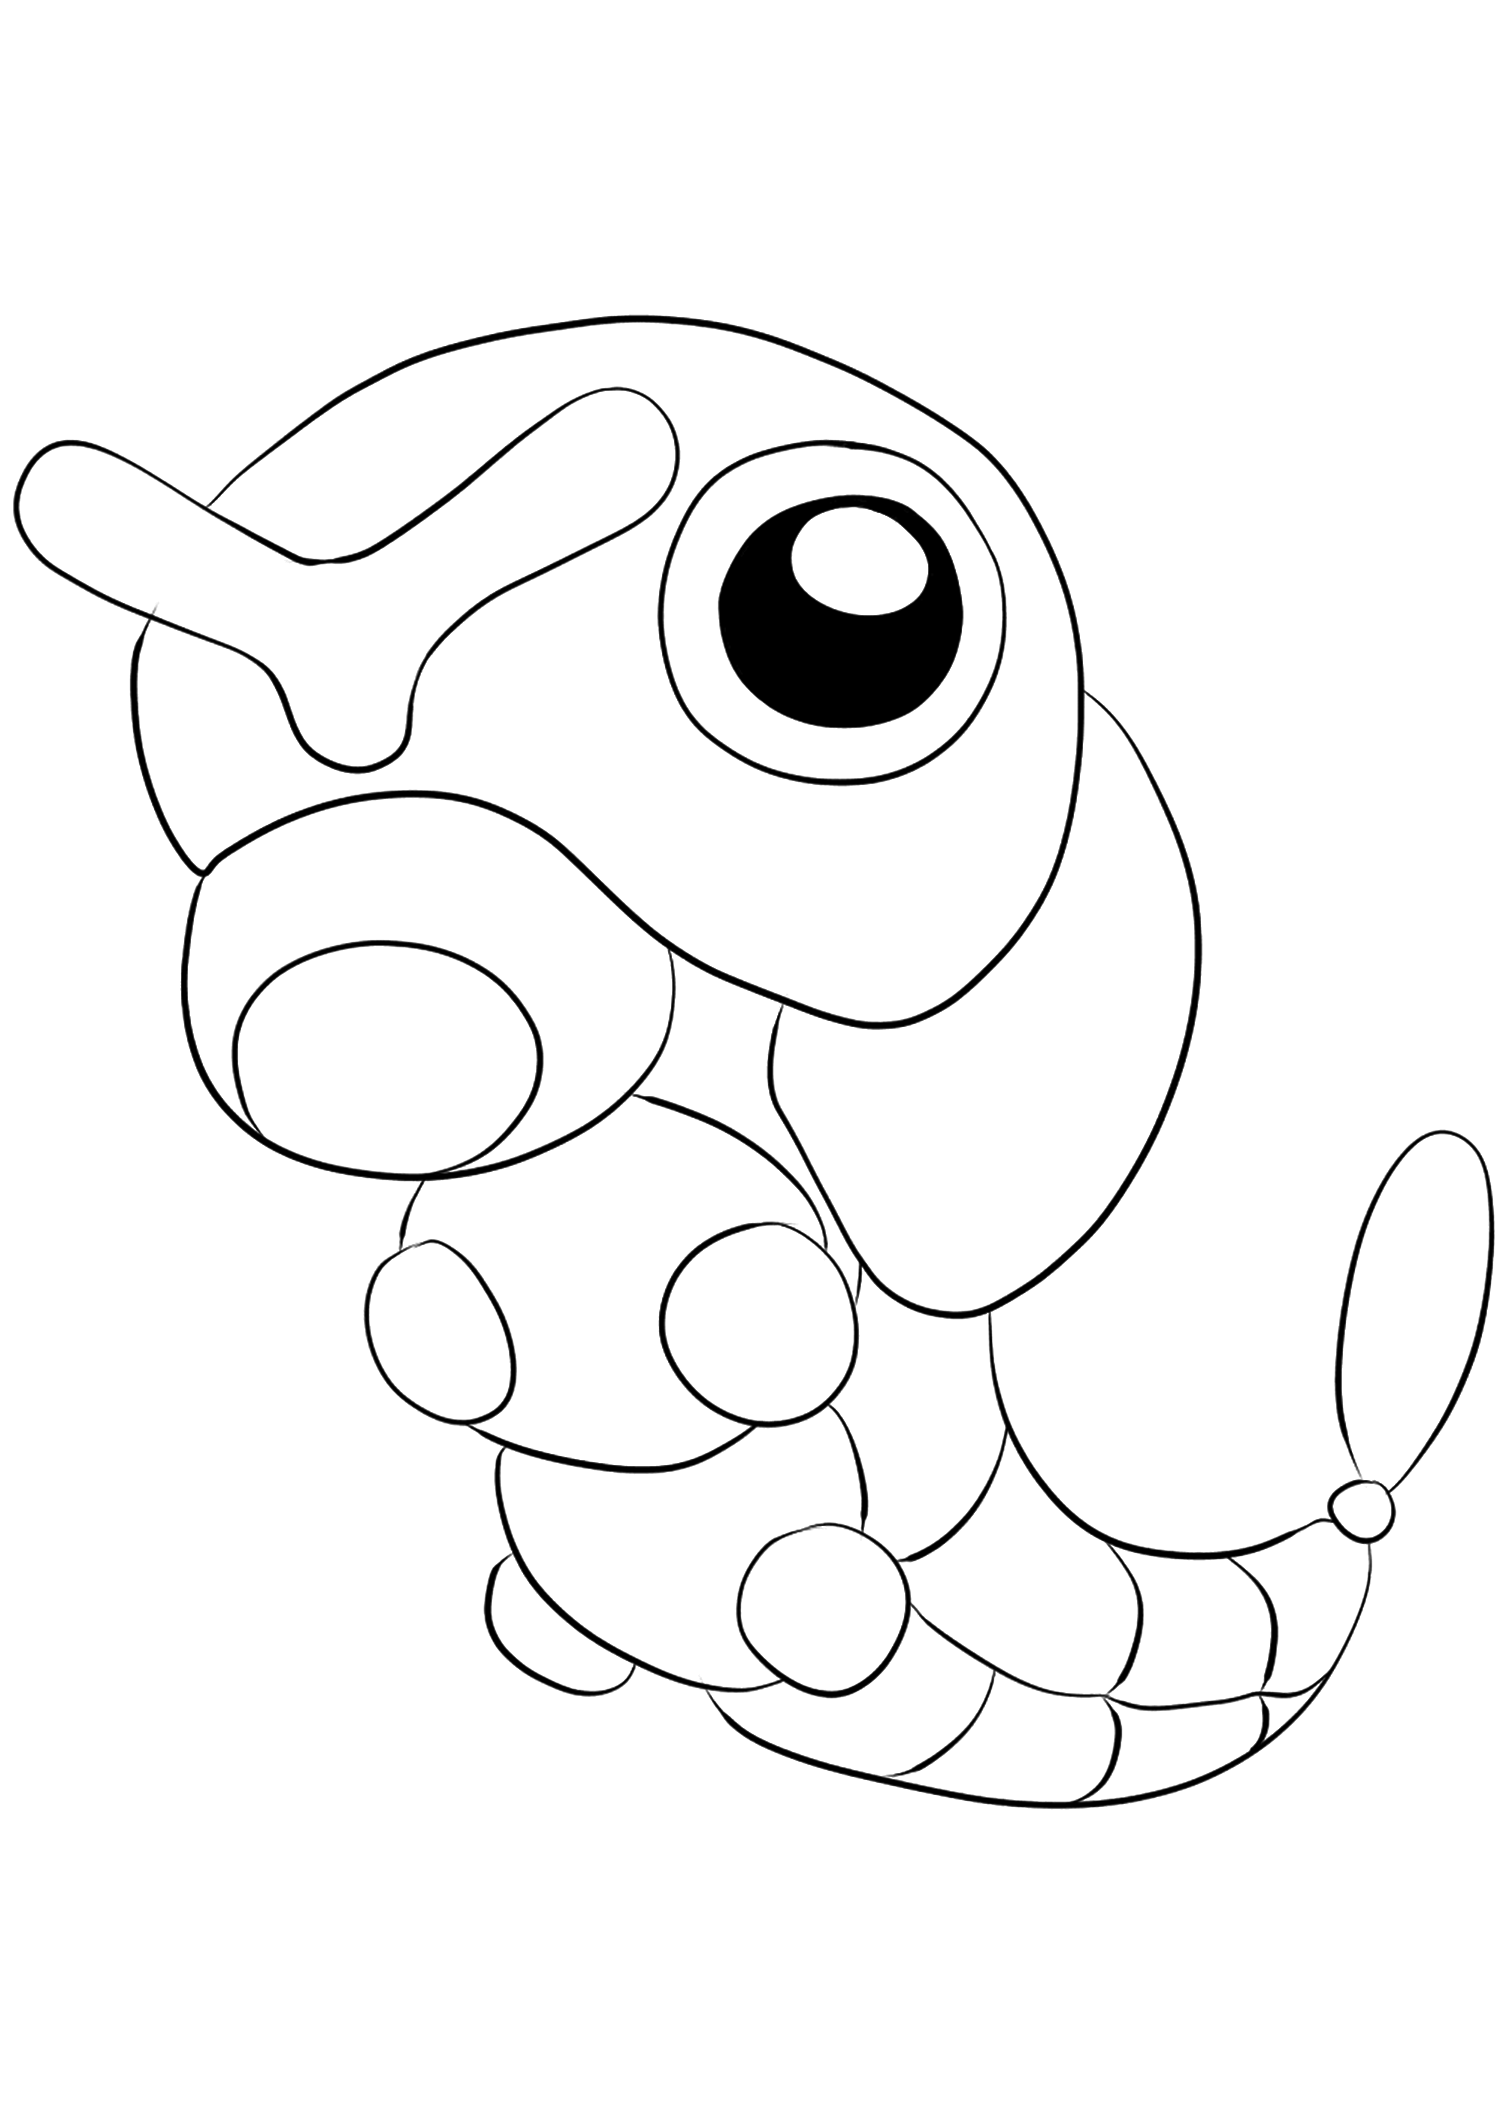 Caterpie (No.10)Caterpie Coloring page, Generation I Pokemon of type BugOriginal image credit: Pokemon linearts by Lilly Gerbil'font-size:smaller;color:gray'>Permission: All rights reserved © Pokemon company and Ken Sugimori.